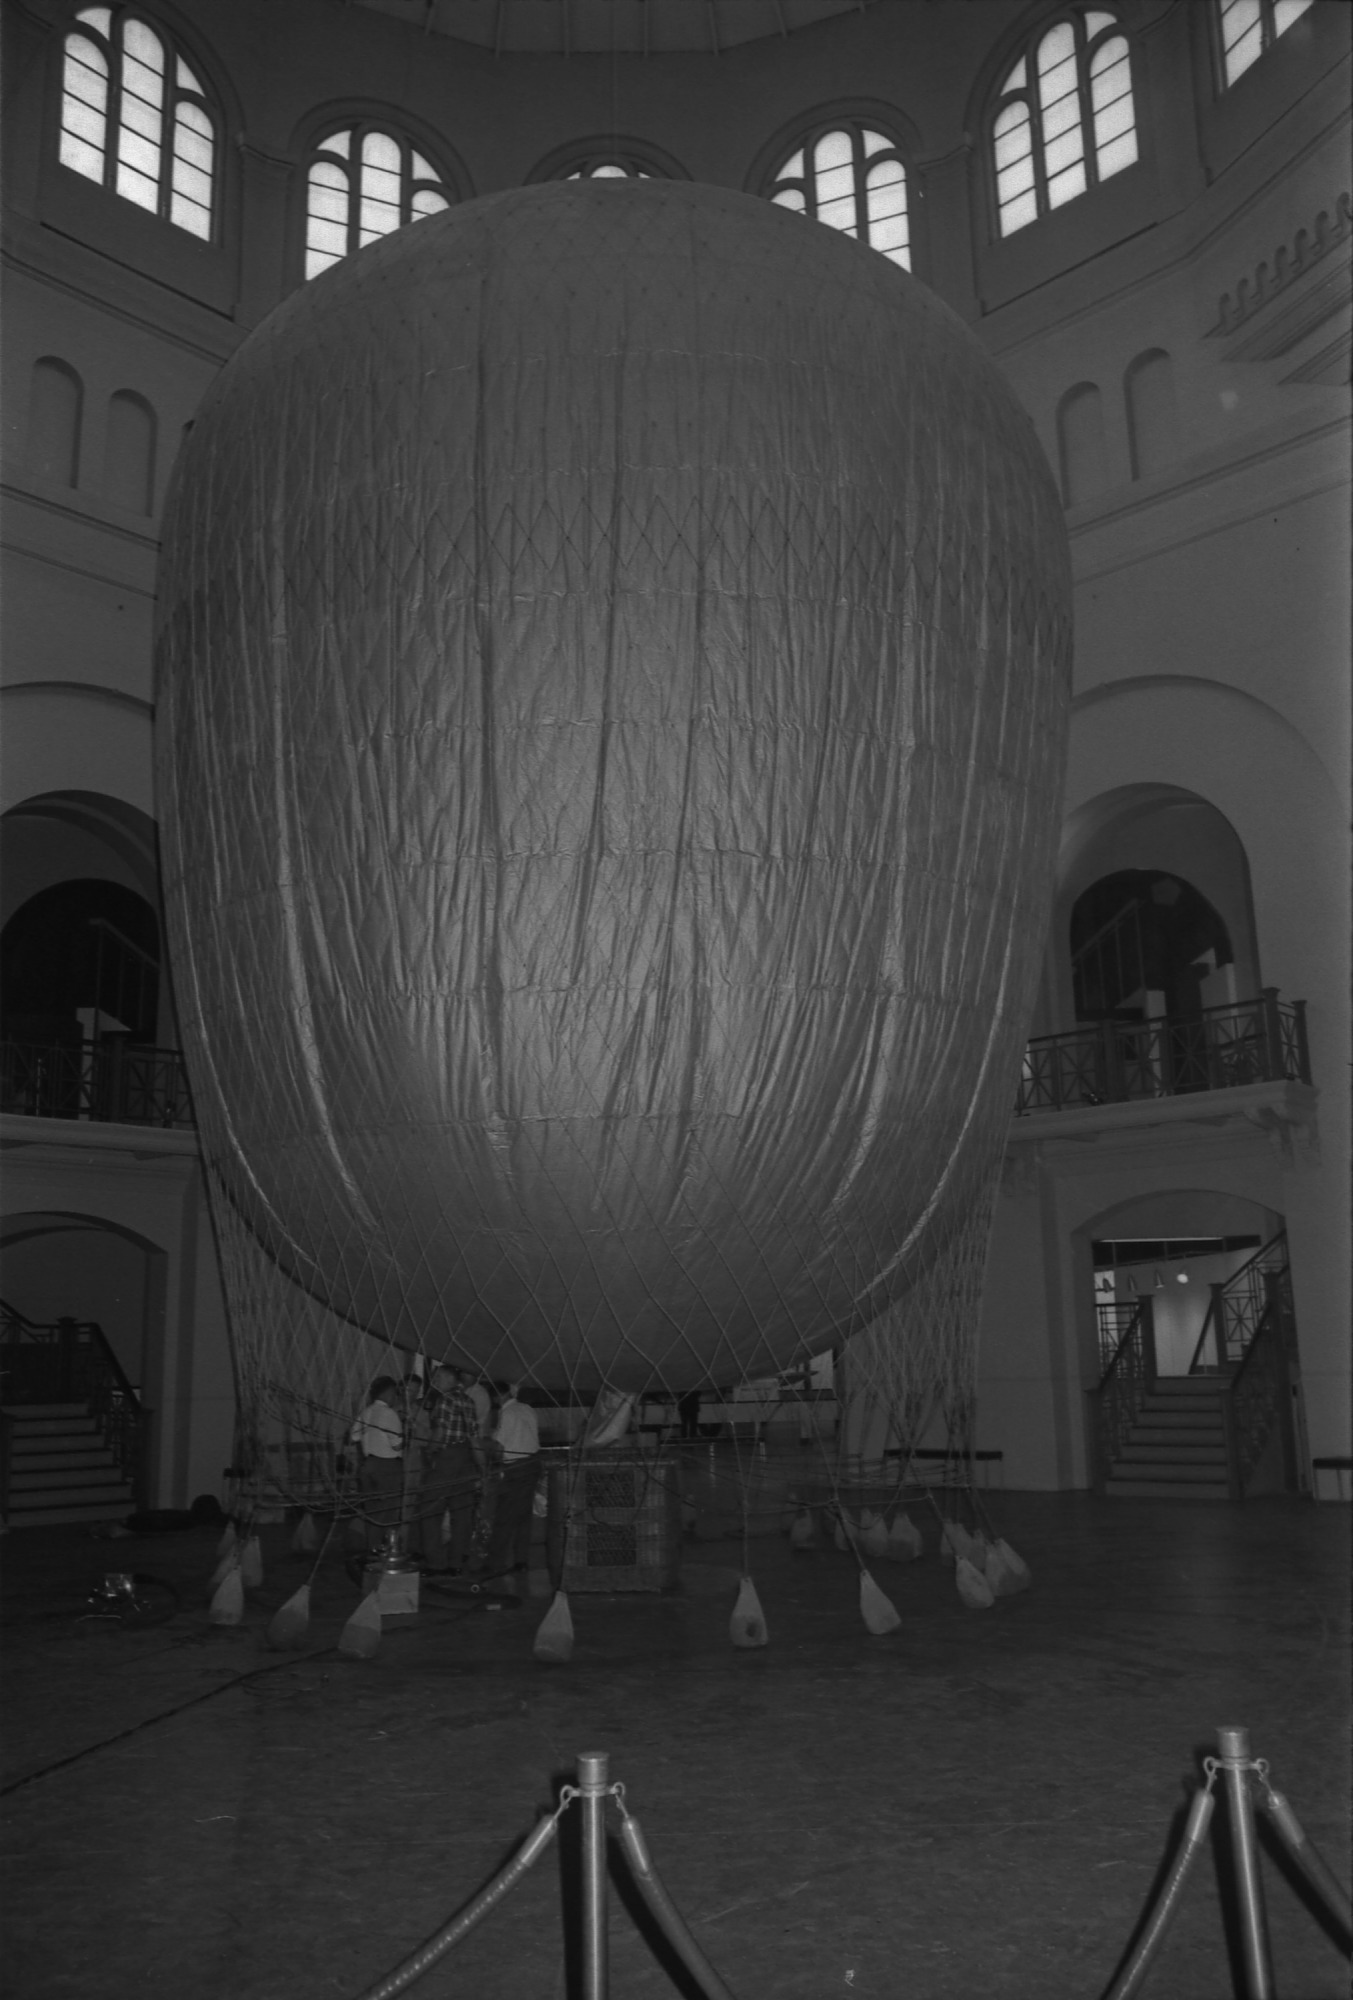 images for Balloon in Rotunda of the Arts and Industries Building